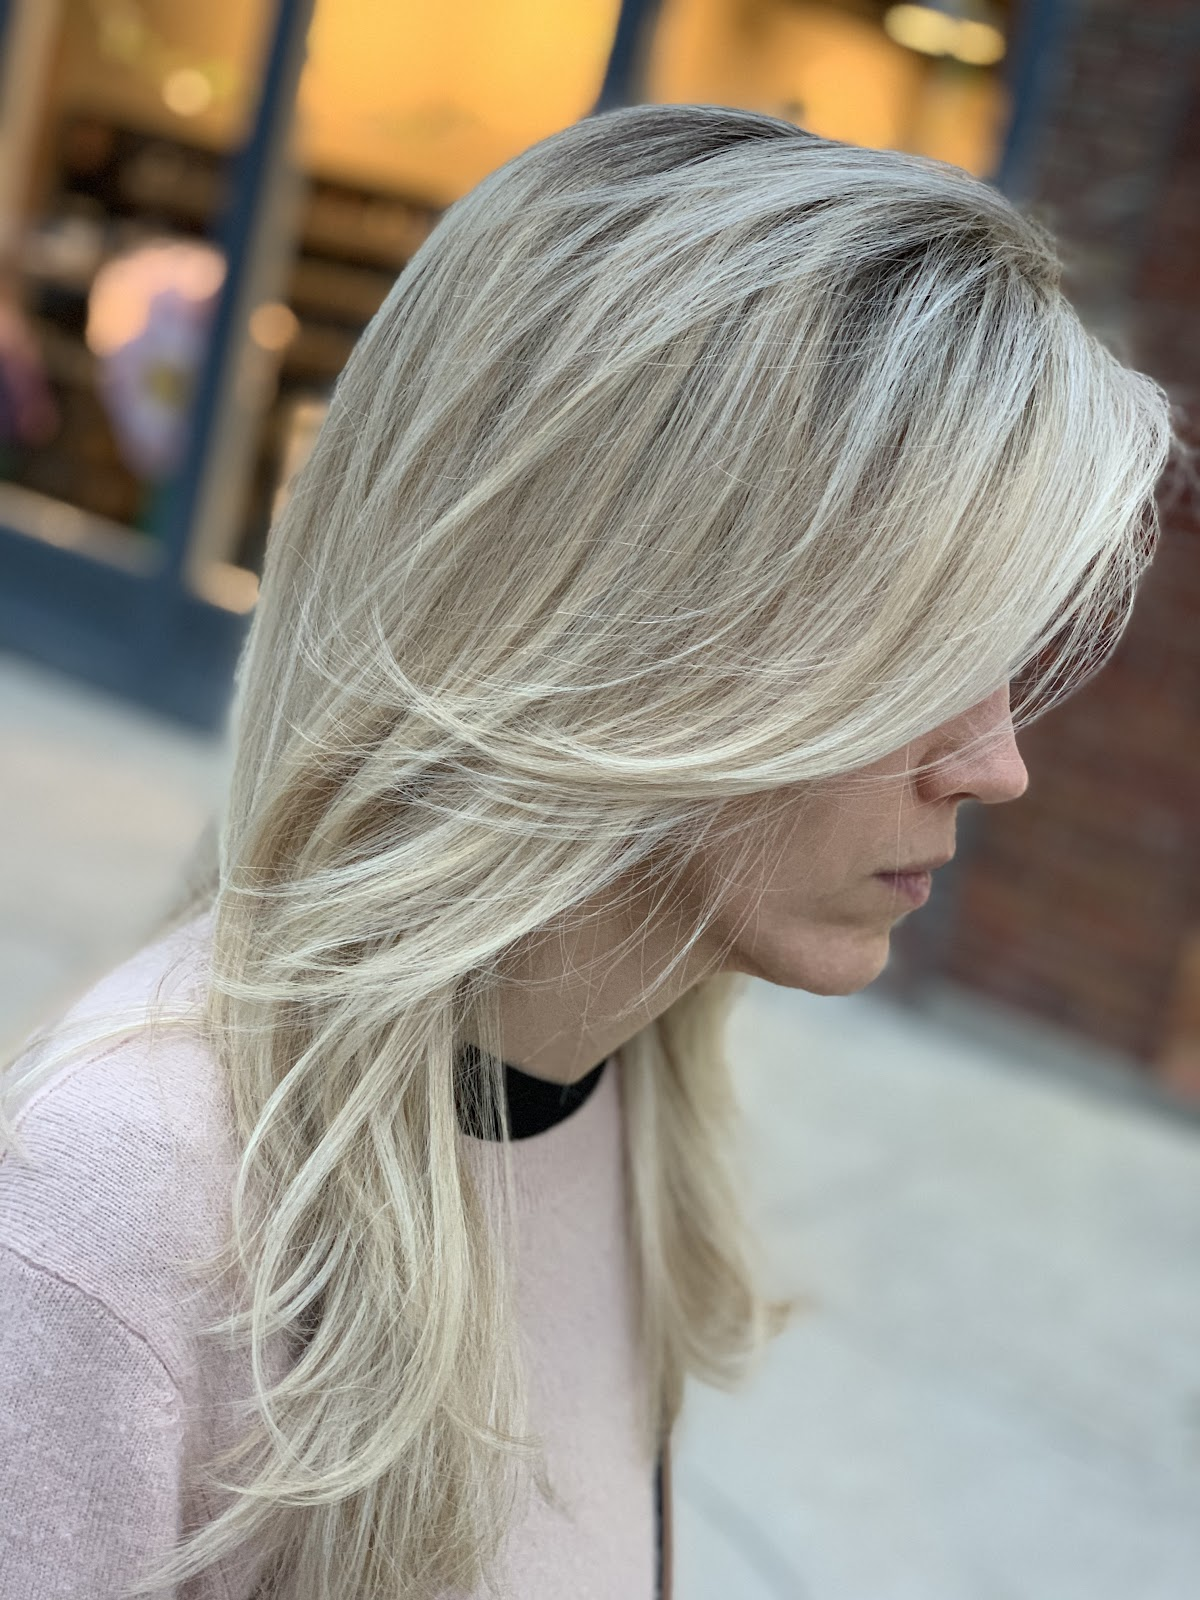 columbus ohio stylist term: layers